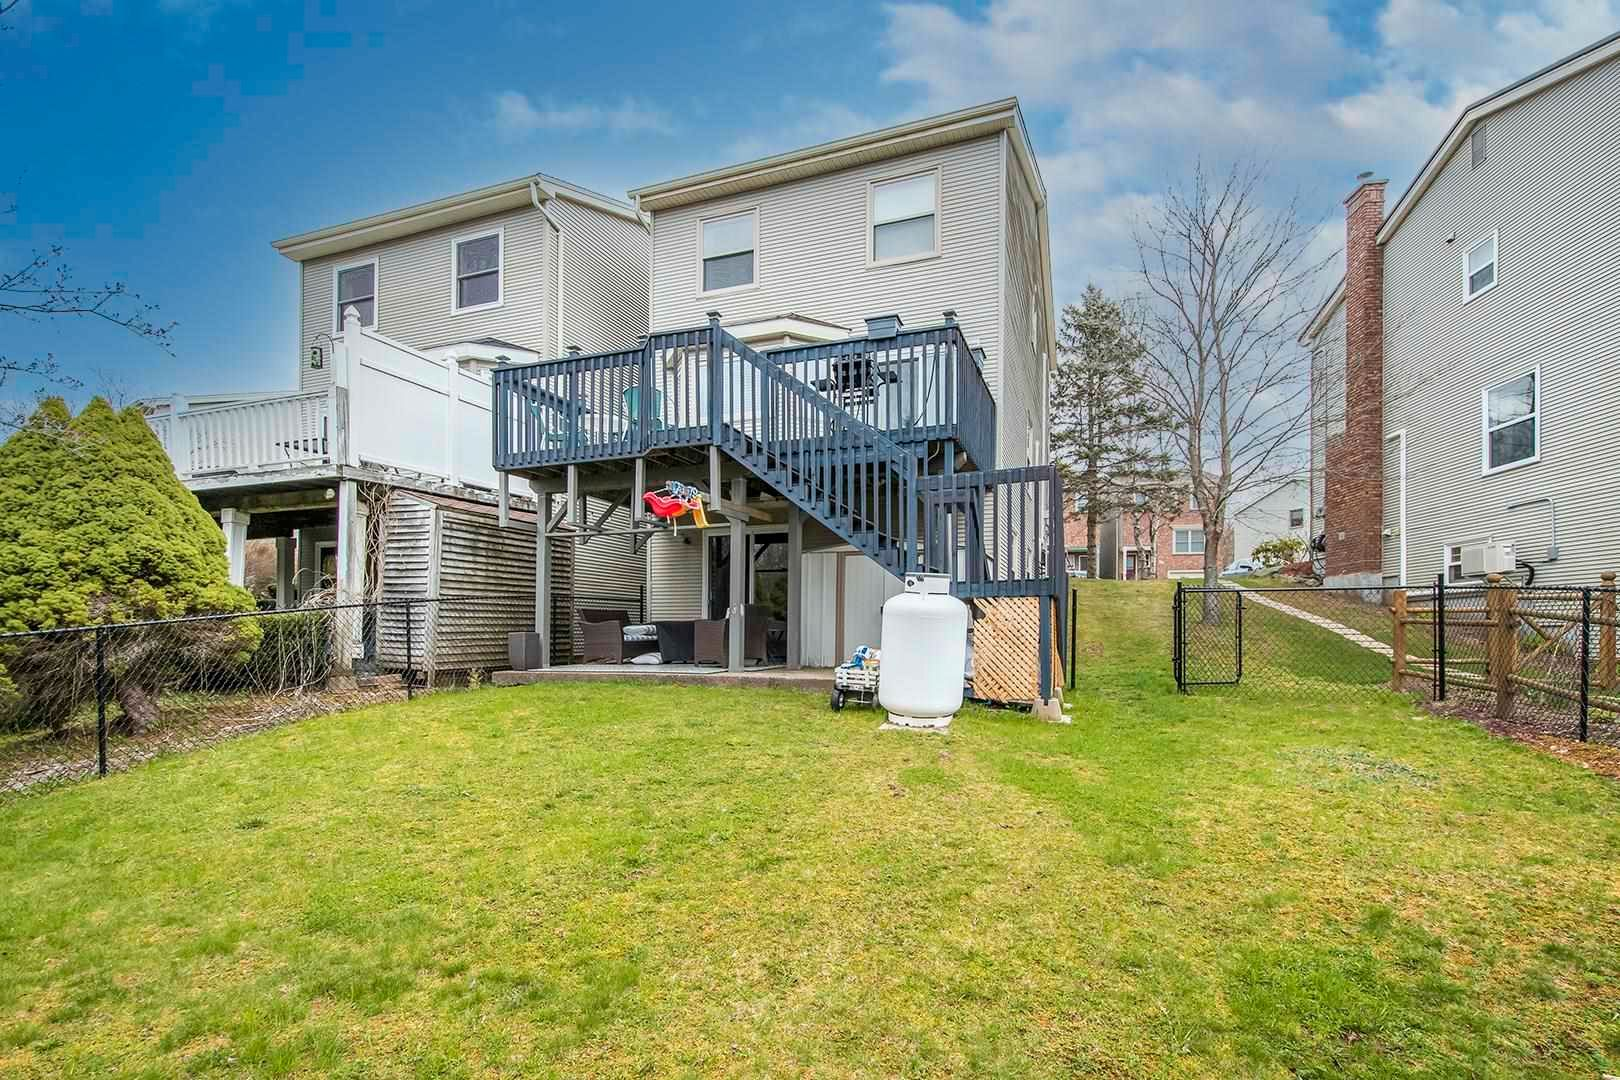 Photo 29: Photos: 64 Roy Crescent in Bedford: 20-Bedford Residential for sale (Halifax-Dartmouth)  : MLS®# 202110846